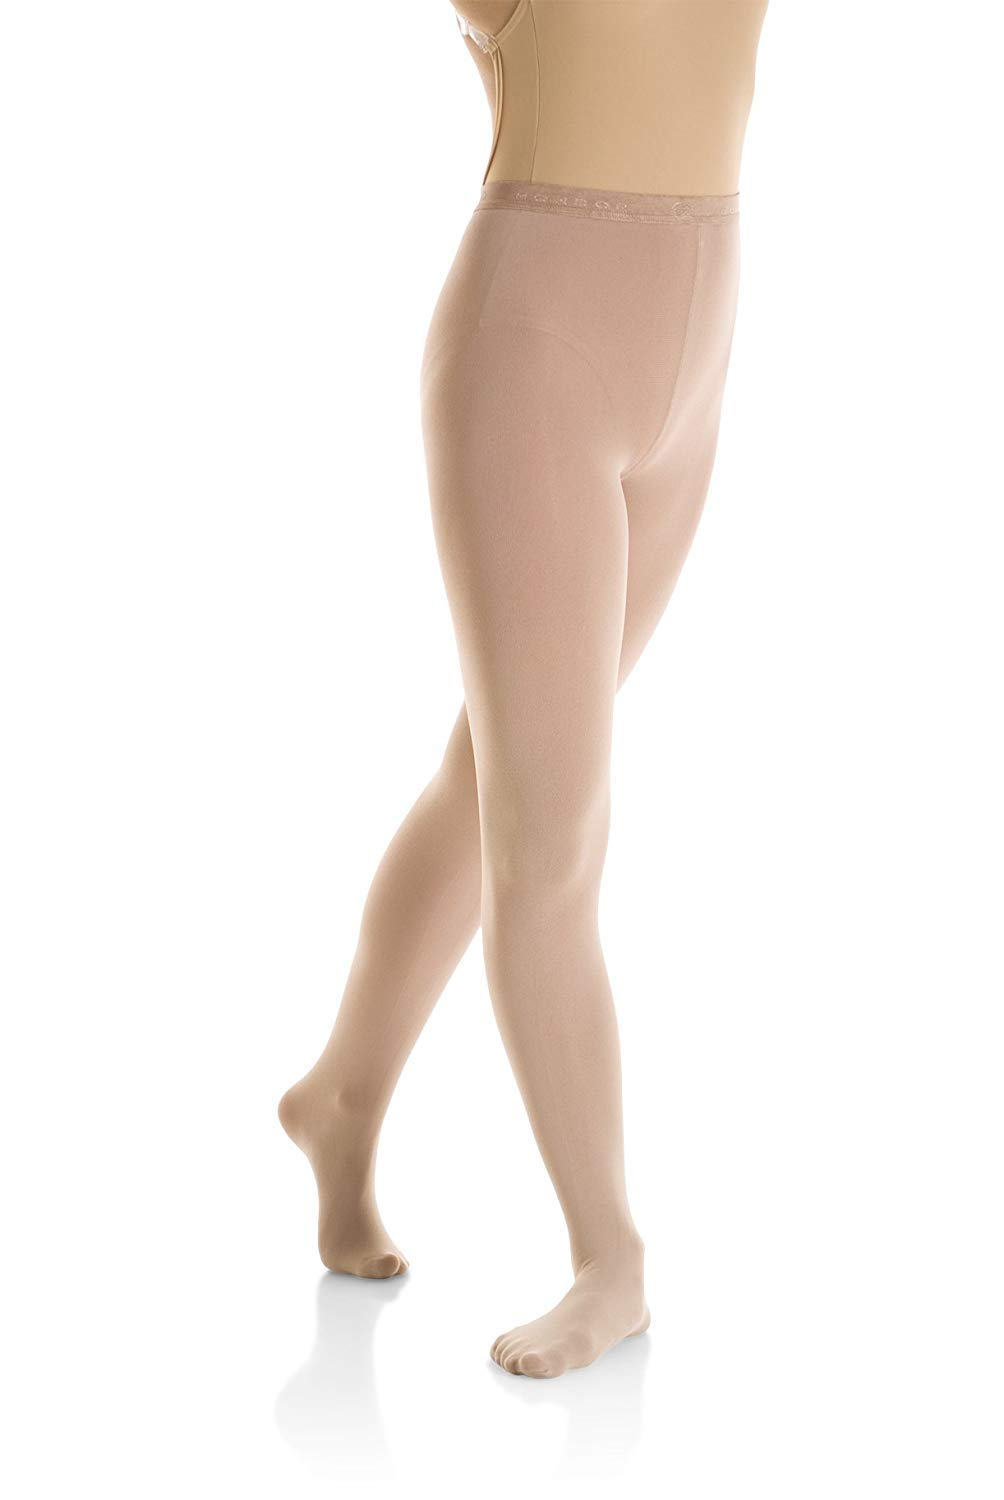 b8d5fd93dab9c Amazon.com: Mondor 3337 Caramel Footed Evolution Figure Skating Tights:  Home & Kitchen